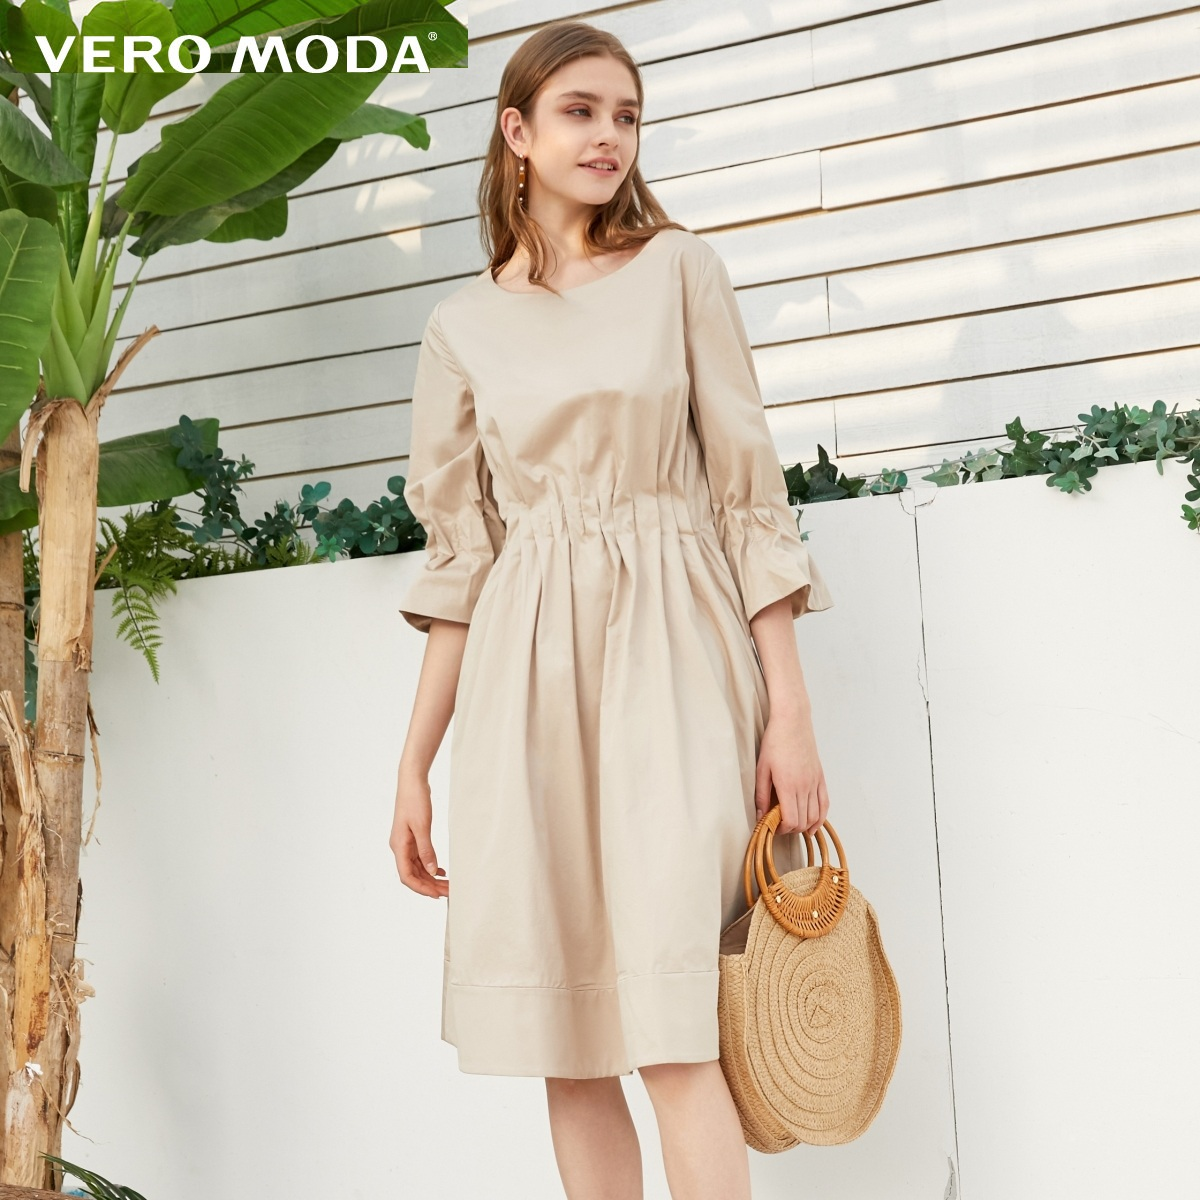 Vero Moda 100% Cotton Prairie Chic Elasticized Waist Pure Color Dress | 31916Z512